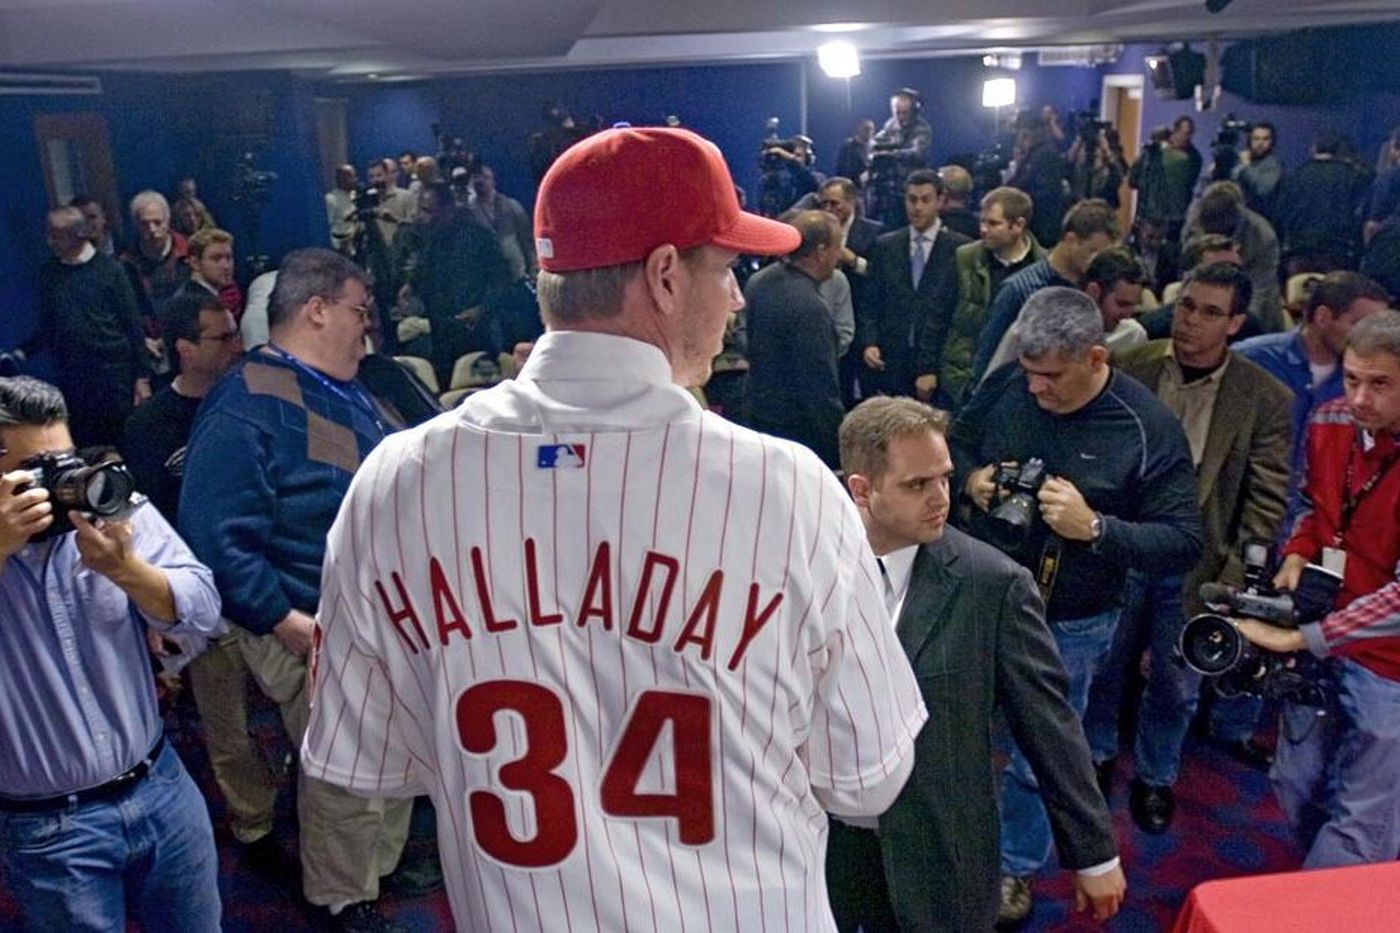 In Roy Halladay, greatness ran strong